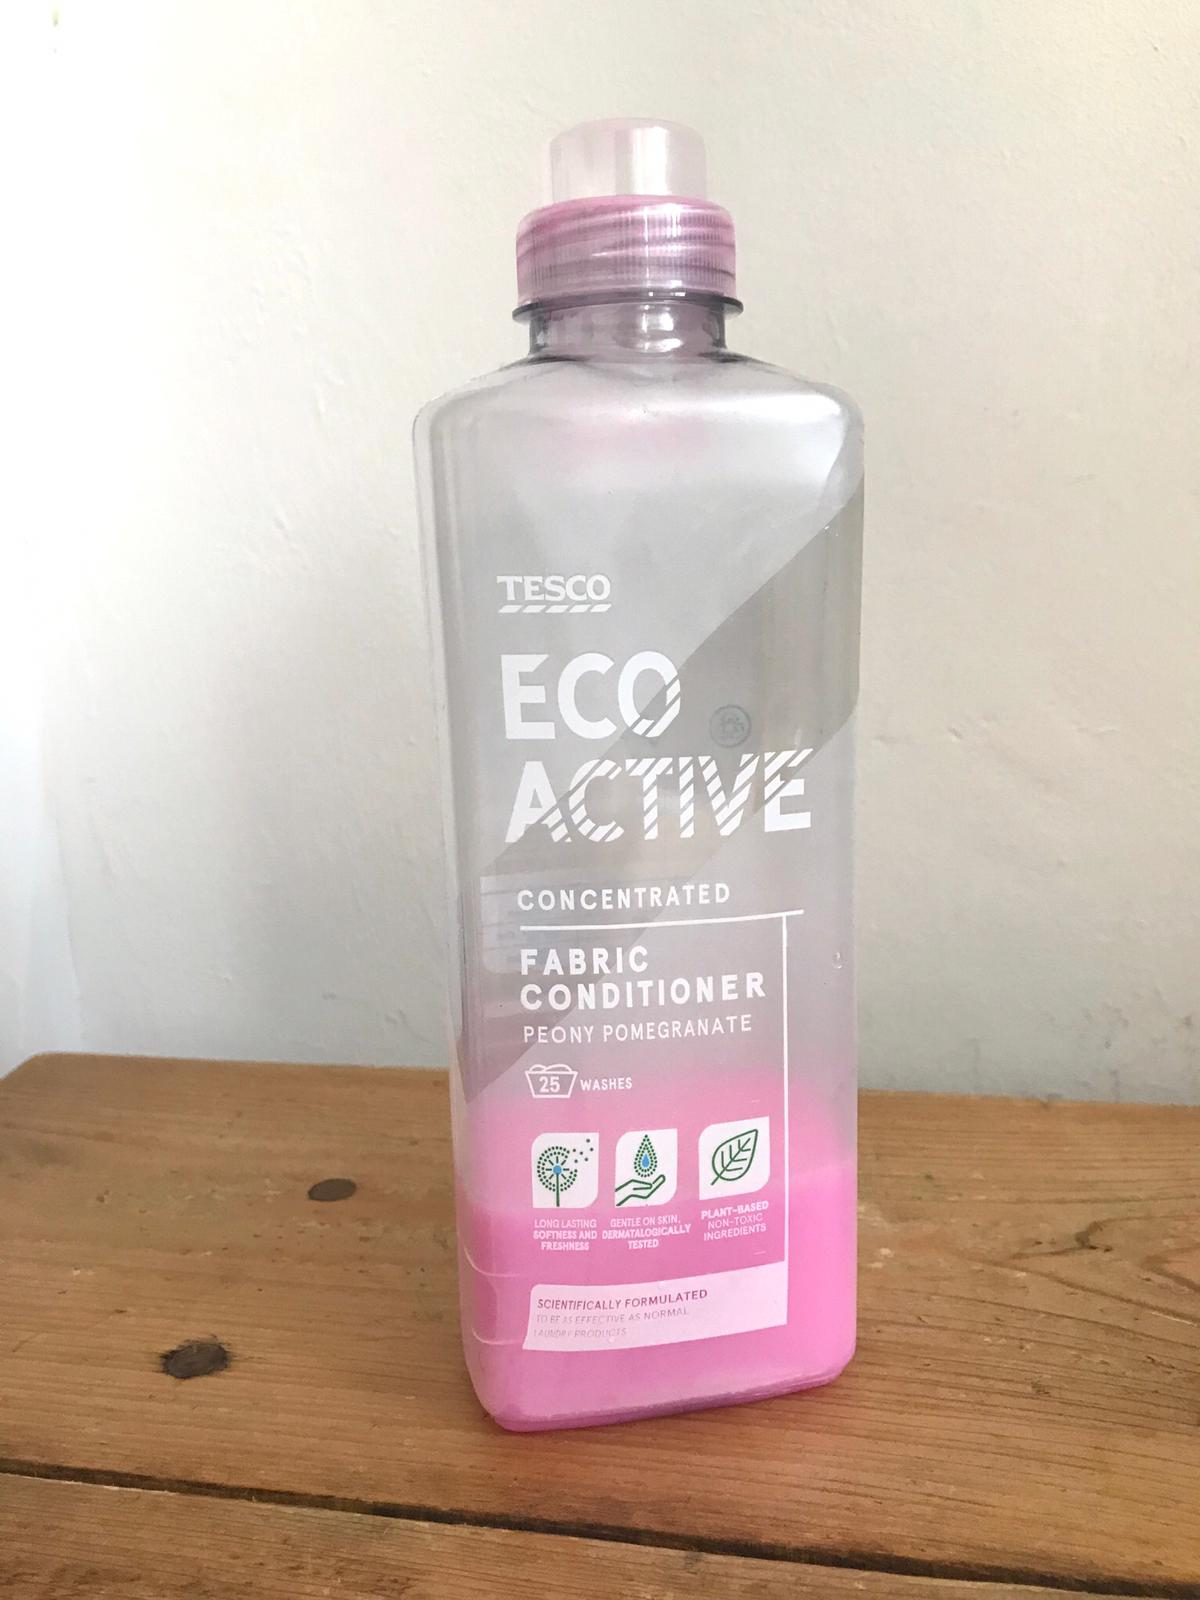 Tesco Eco Active Fabric Conditioner Review Friendly For The Environment But Not For Your Nose A Muslim Family Review Blog